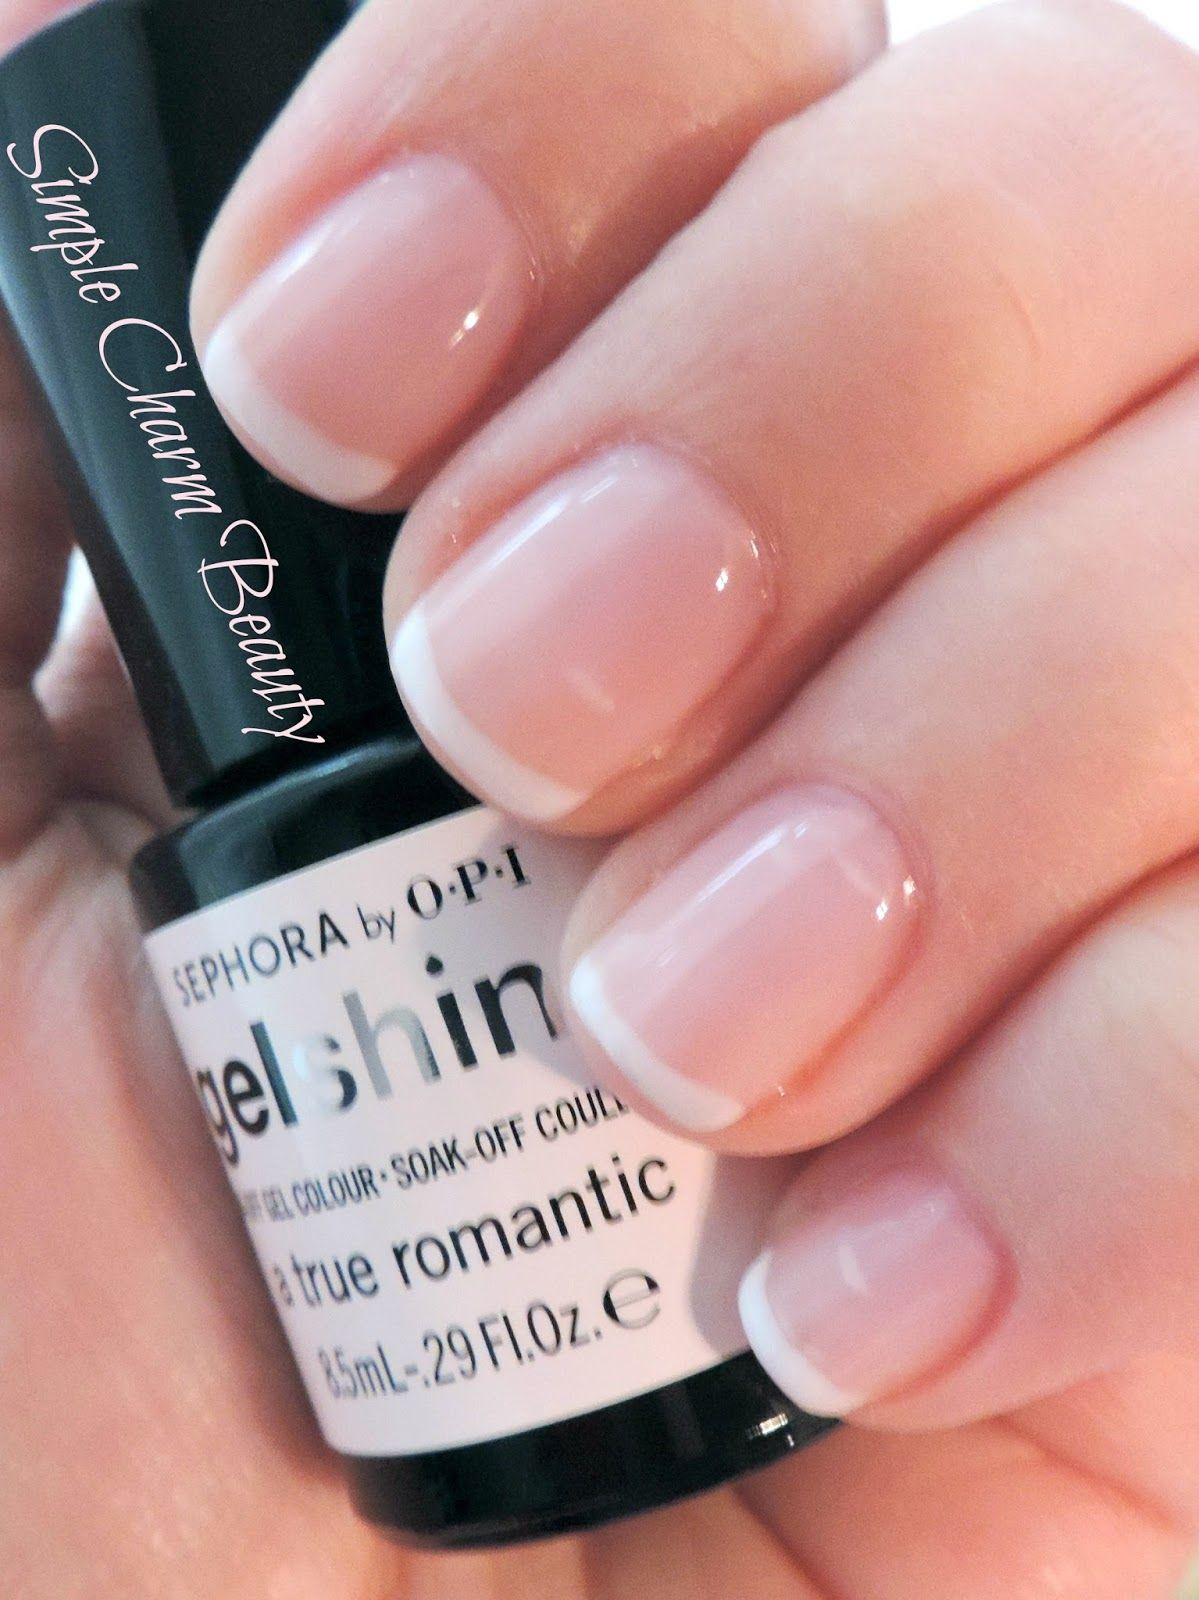 Sephora by OPI Gel French Manicure kit A True Romantic and White Hot ...